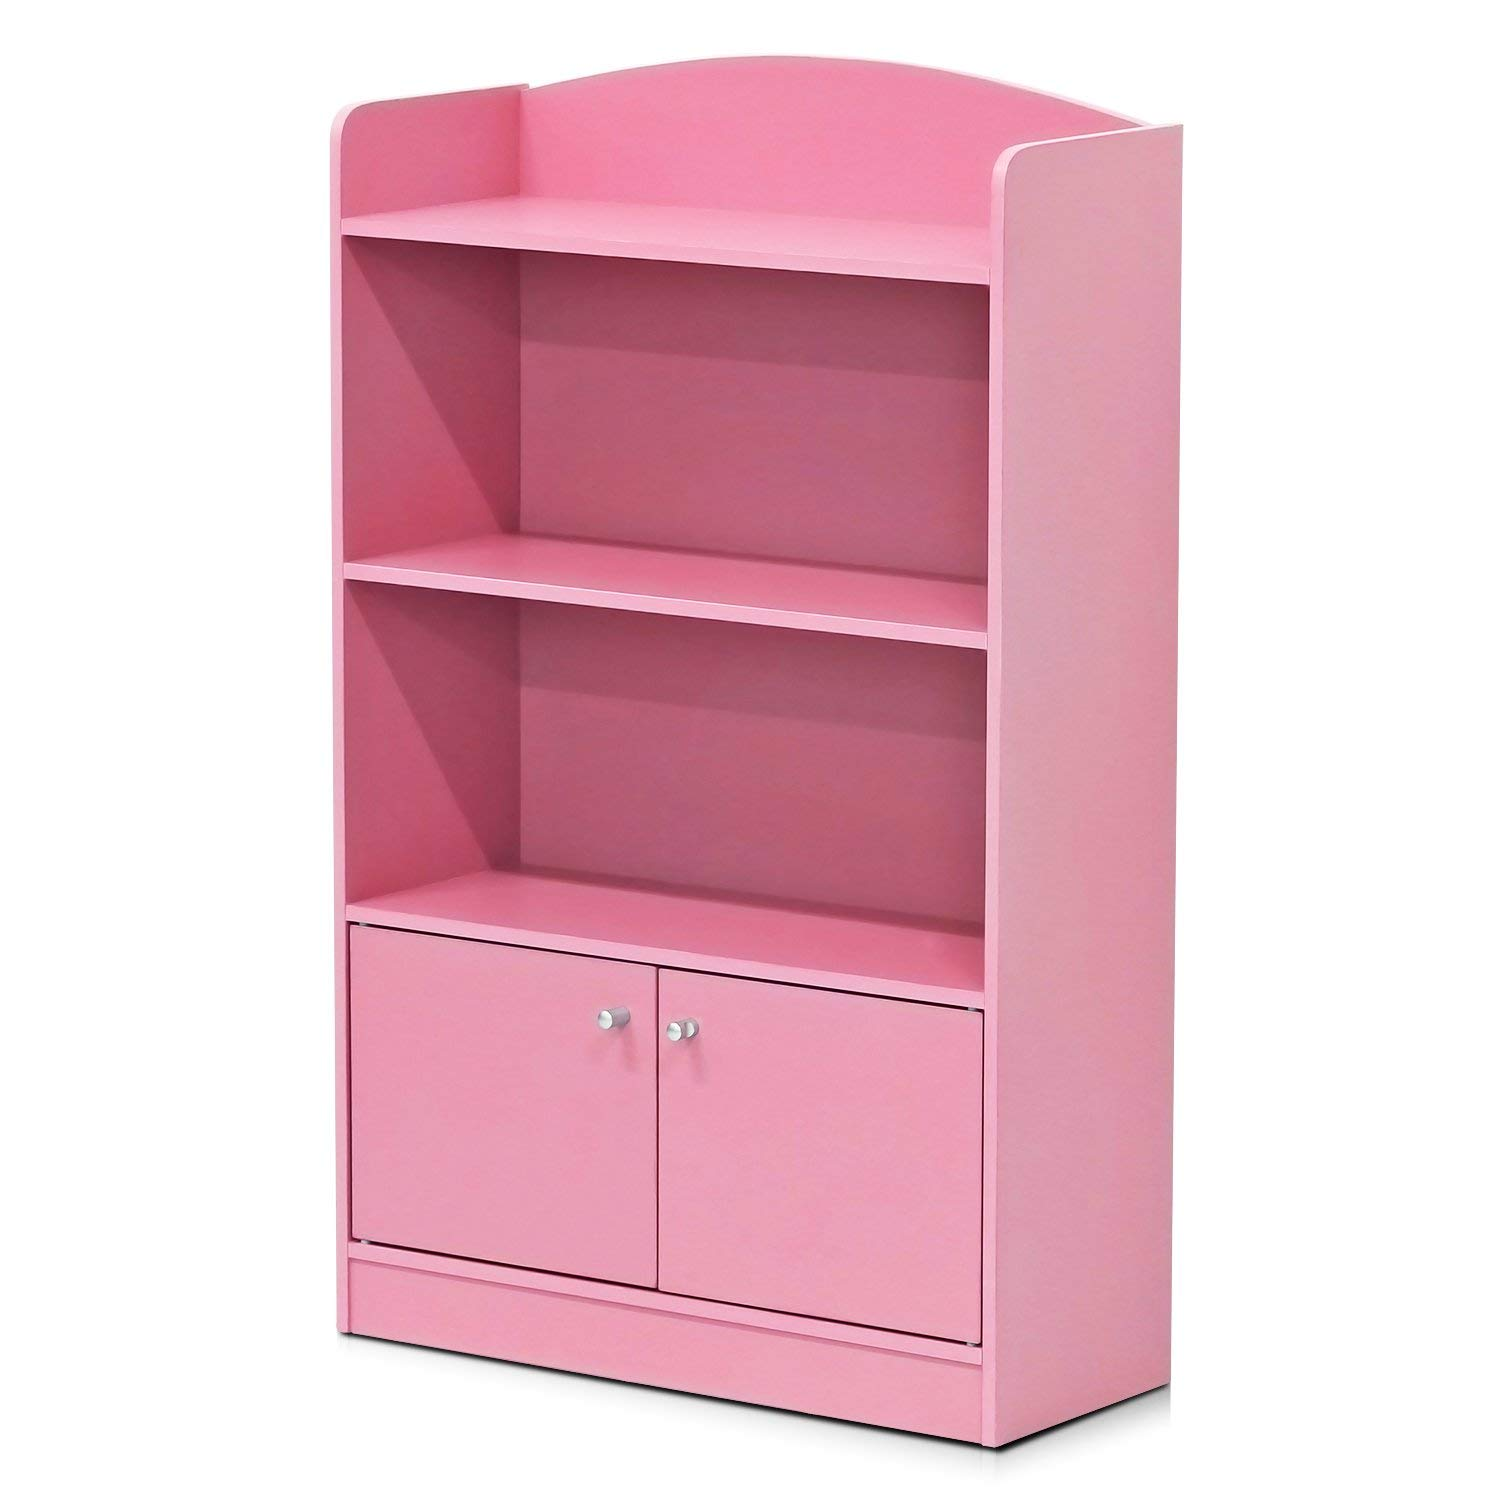 Furinno FR16121PK Stylish Kidkanac Bookshelf with Storage Cabinet, Pink